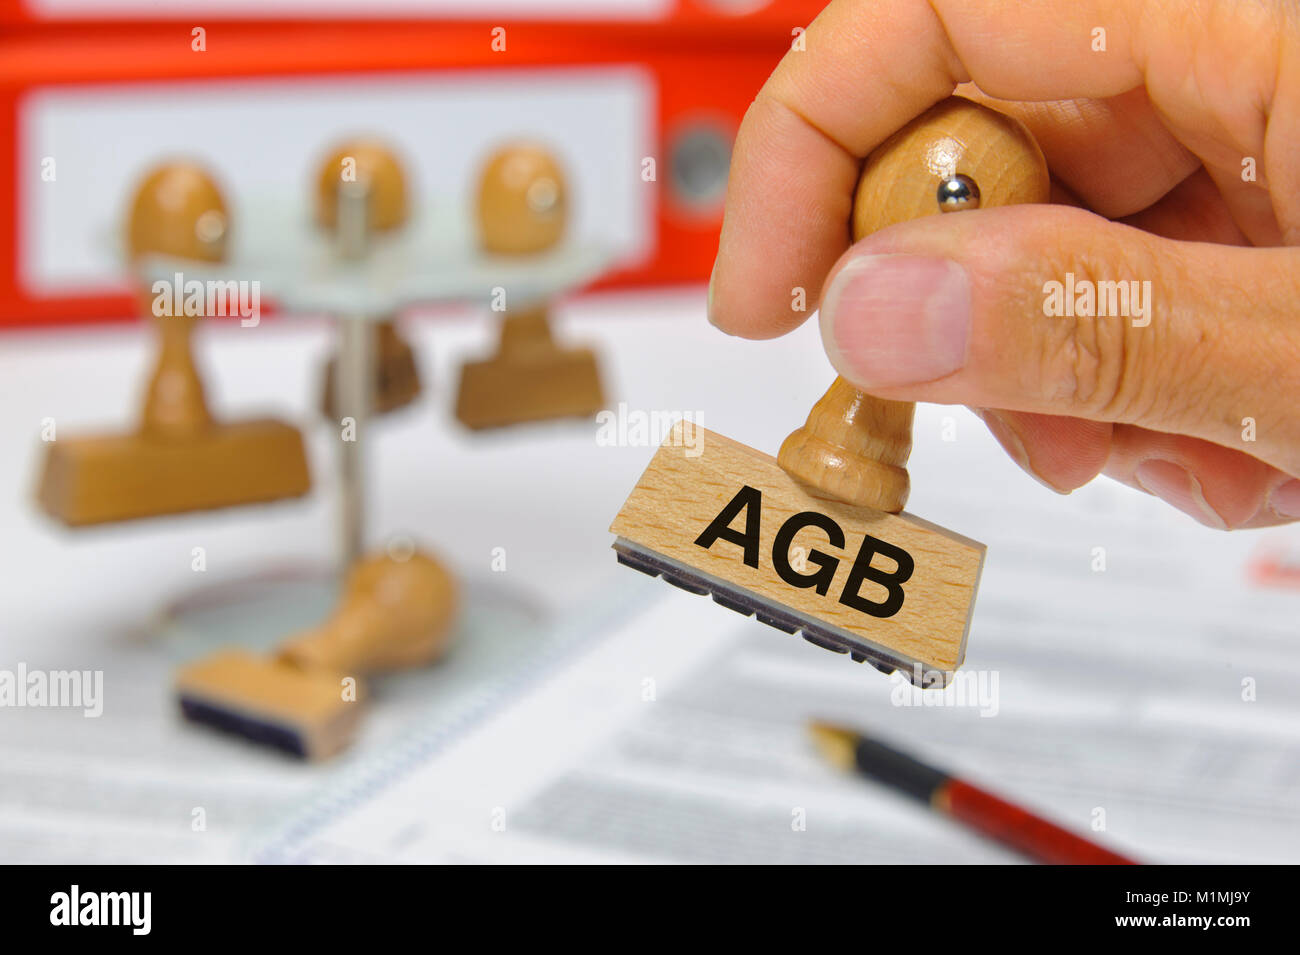 Stempel in Hand beschriftet mit AGB - Stock Image